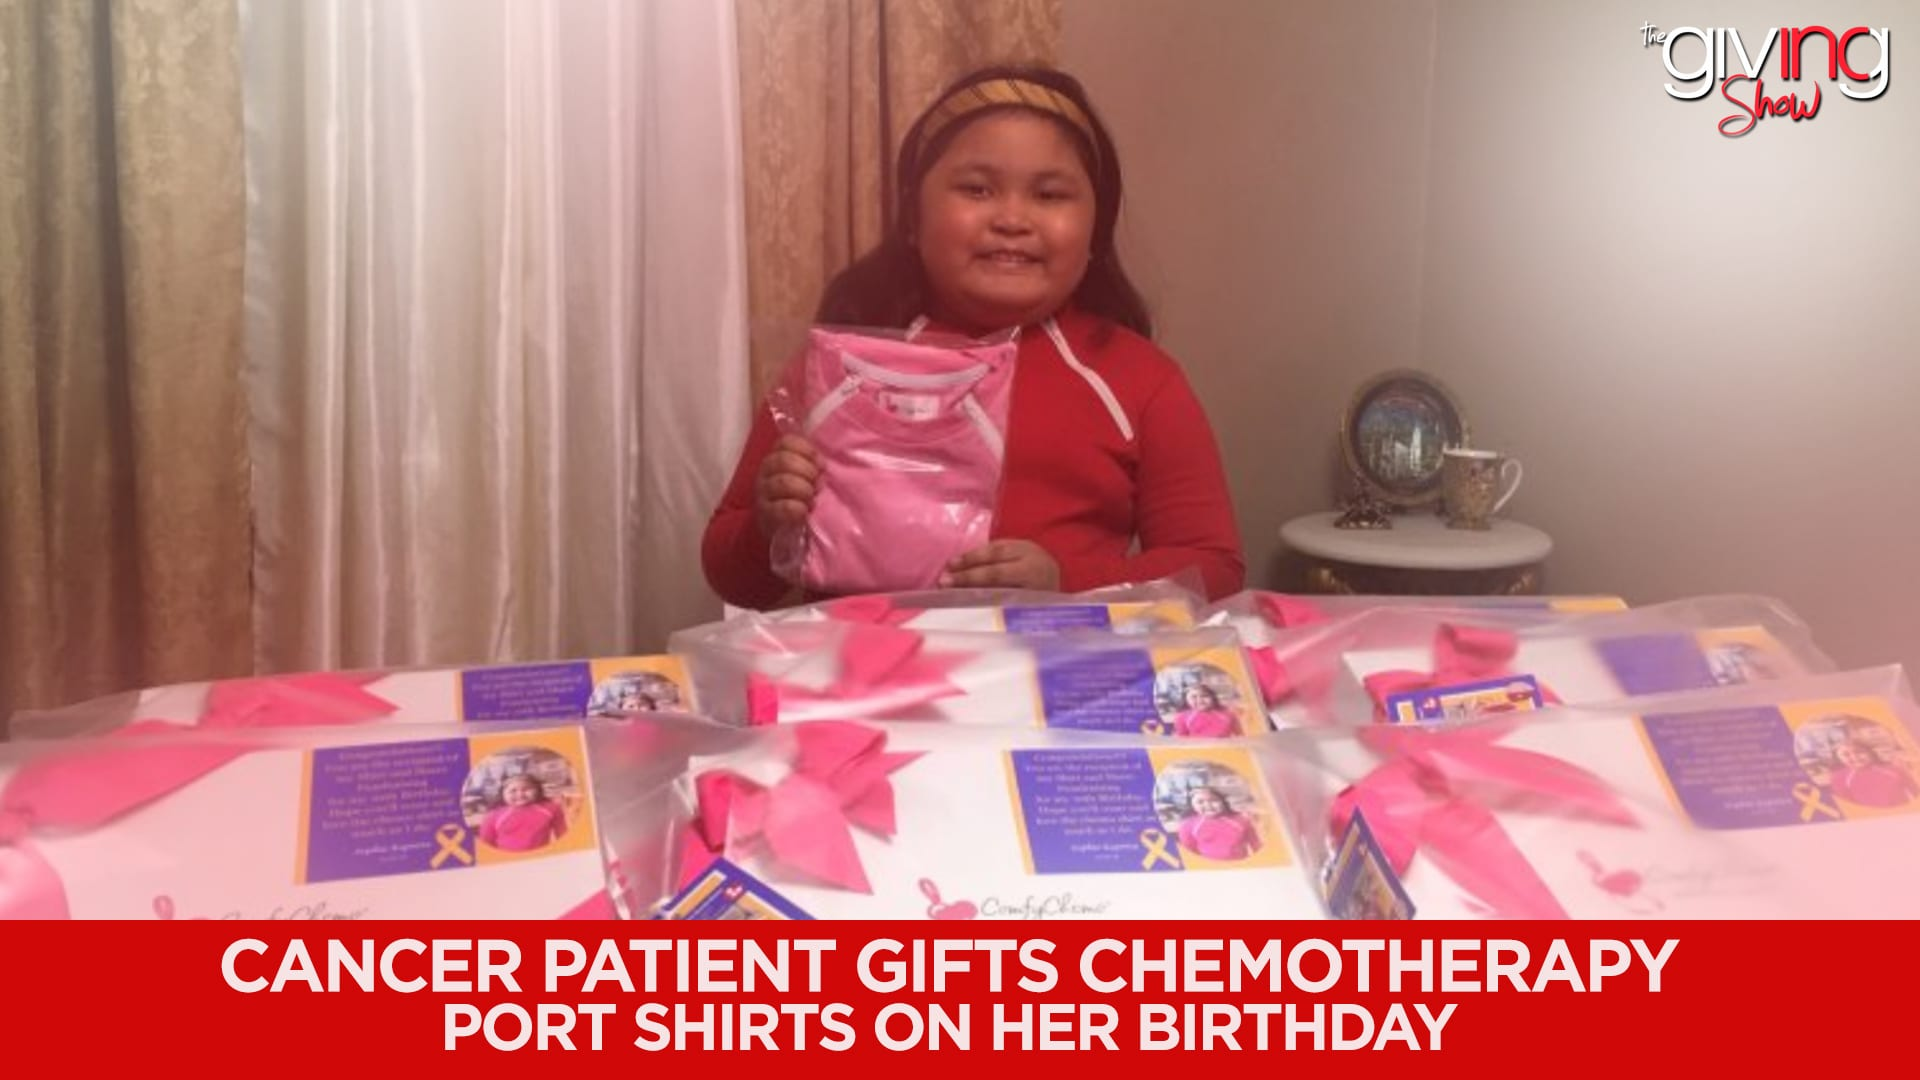 Cancer Patient Gifts Chemotherapy Port Shirts on Her Birthday